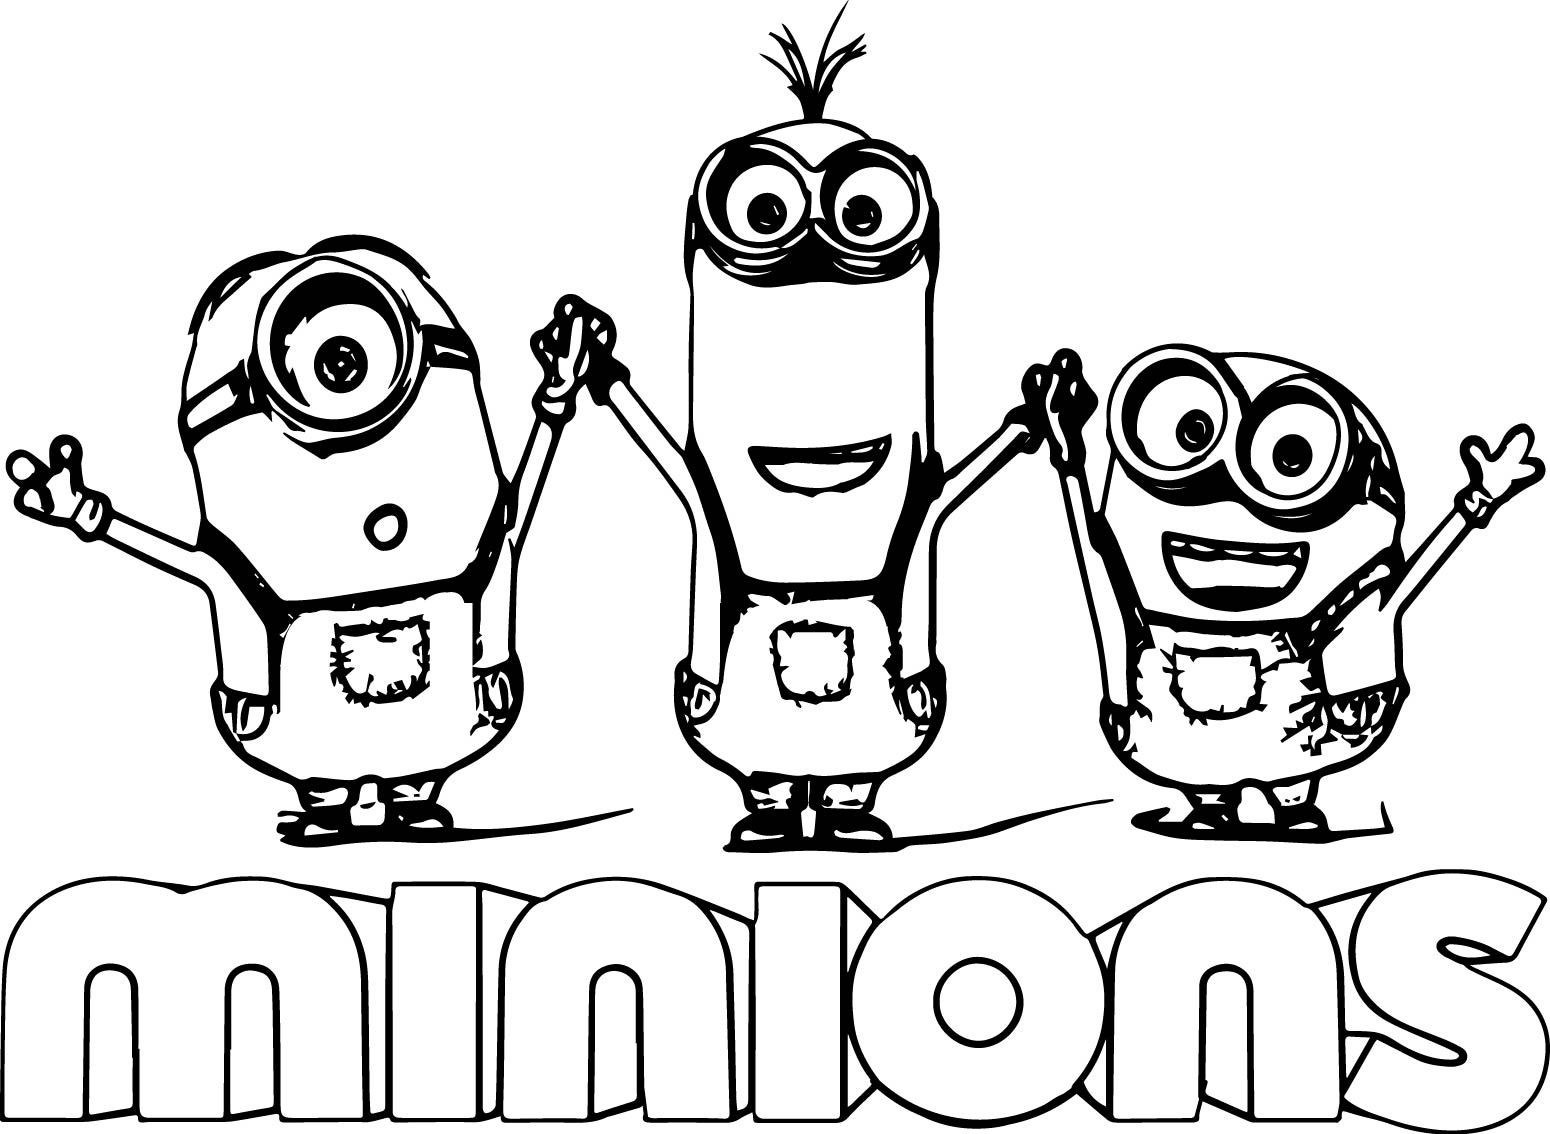 1550x1134 Minion Coloring Pages To Print